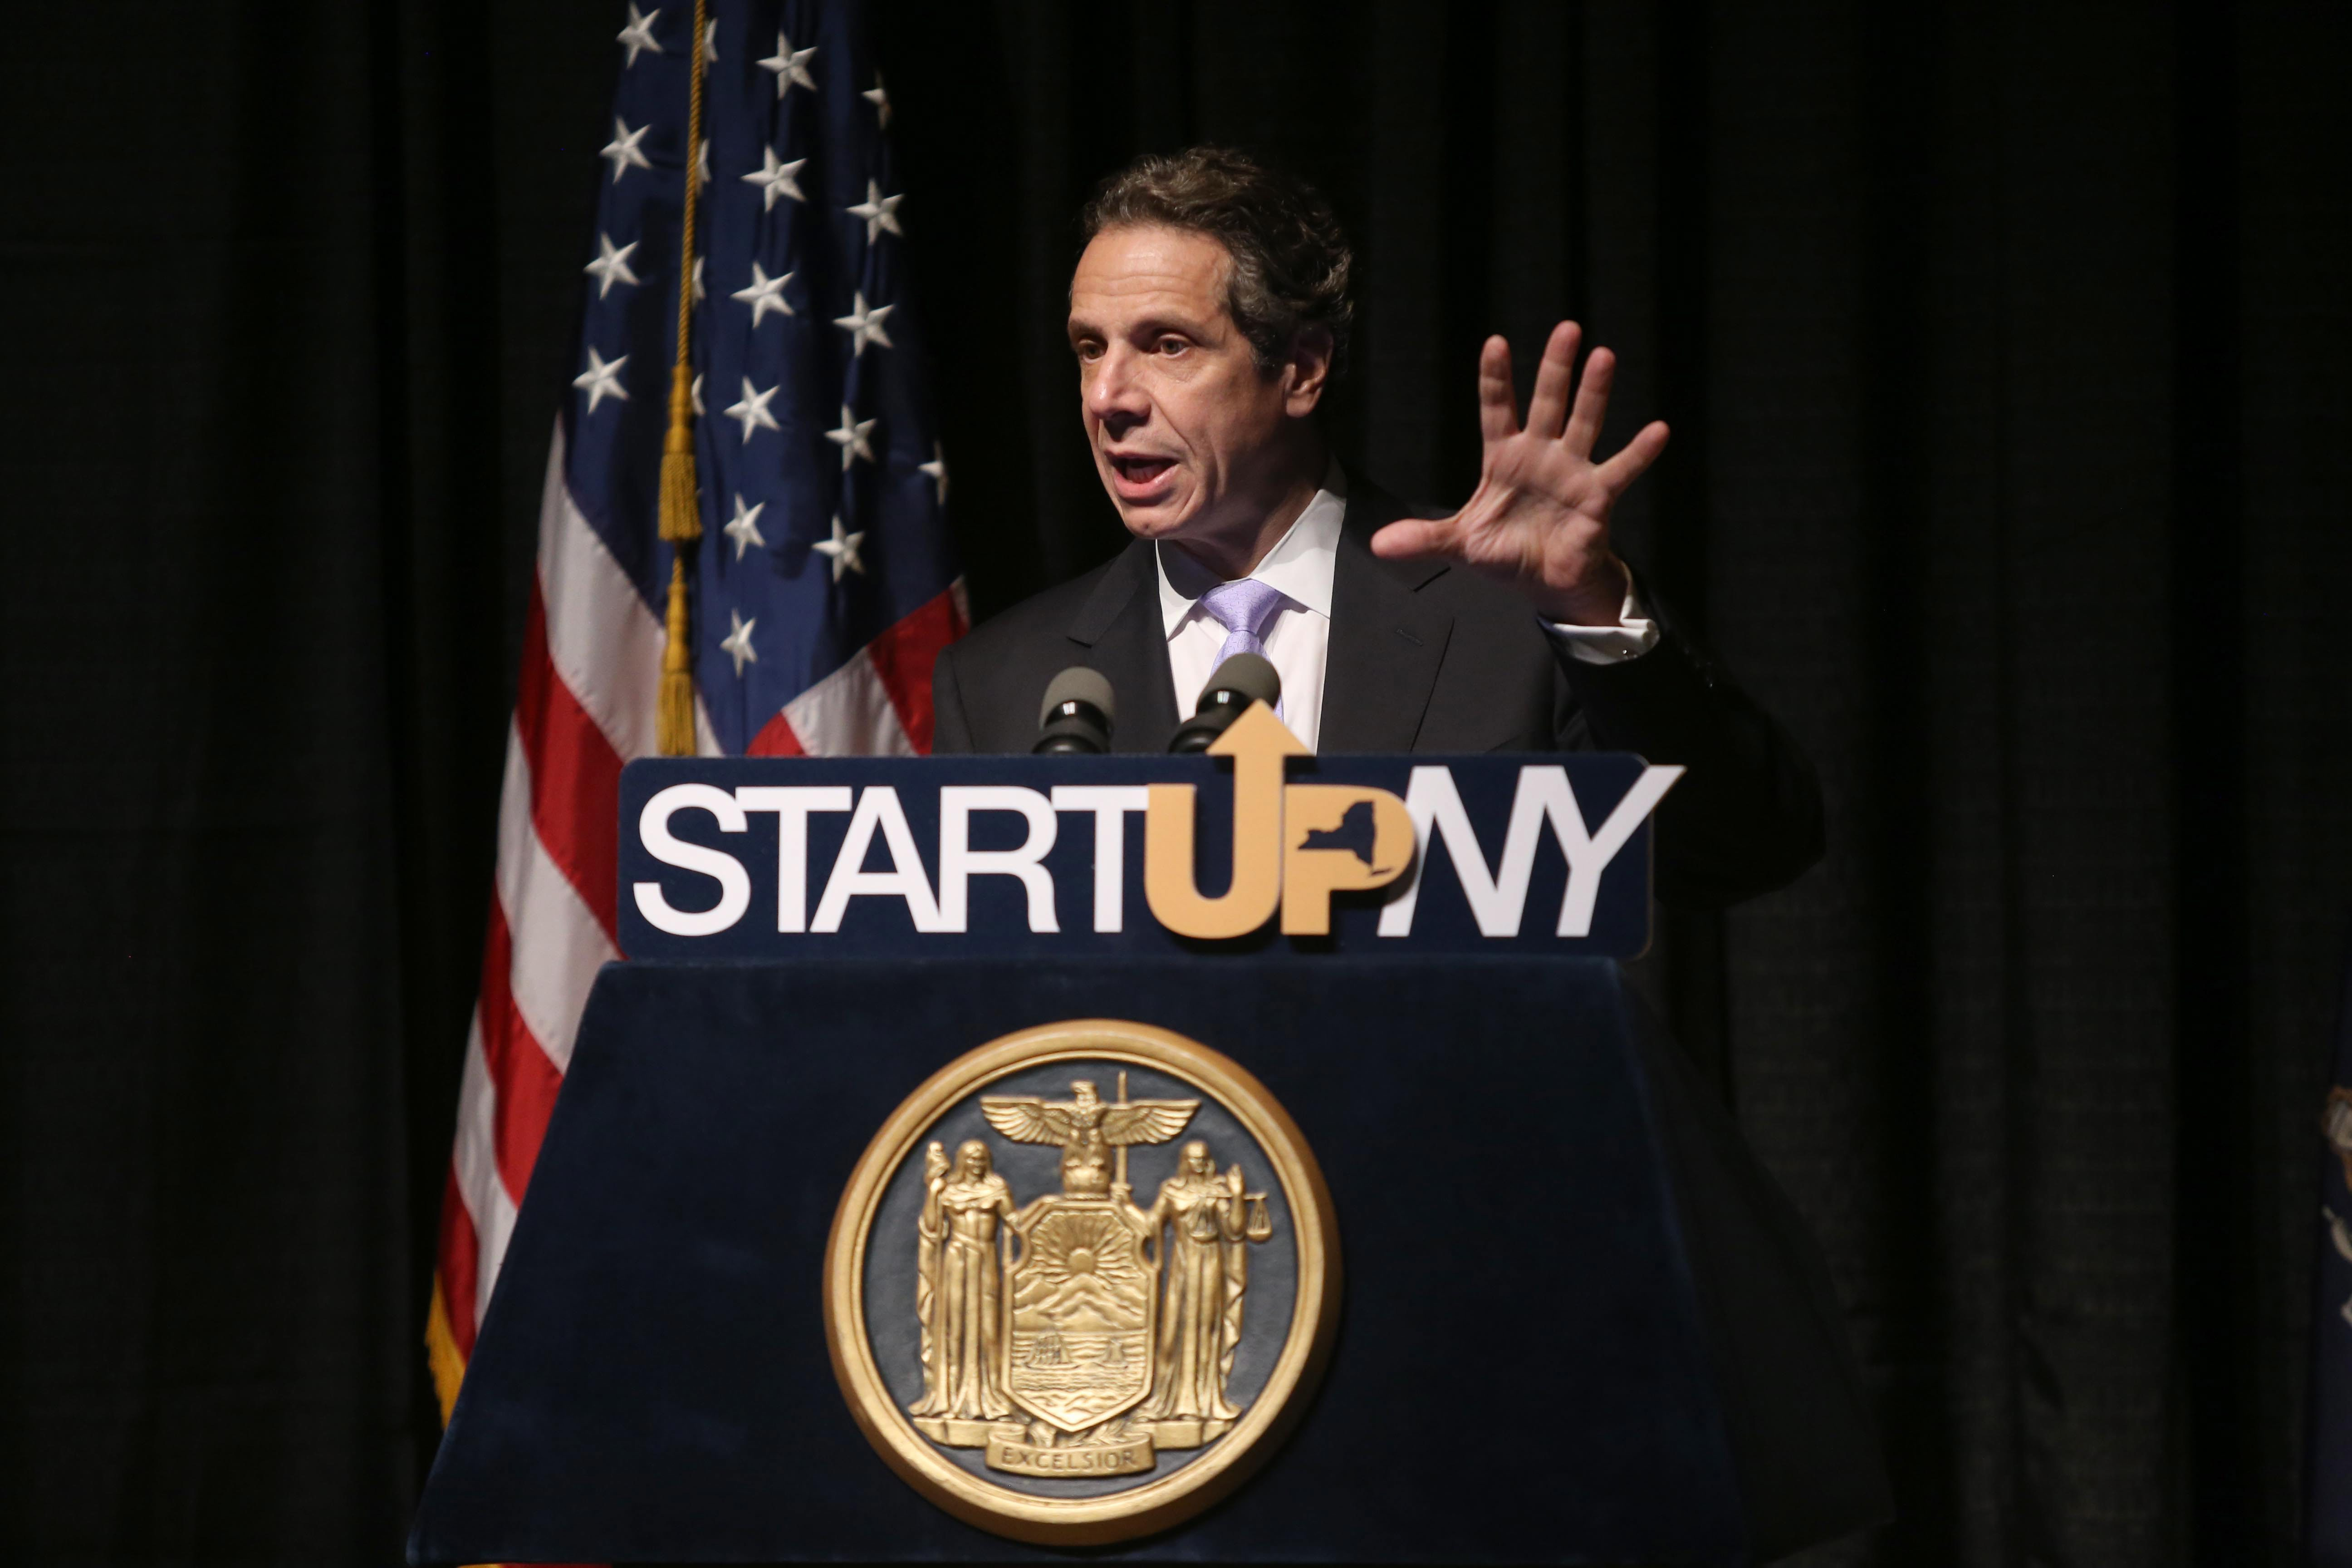 The administration of Gov. Andrew M. Cuomo had hoped the Start-Up NY program would become a magnet for early-stage businesses. (Buffalo News file photo)